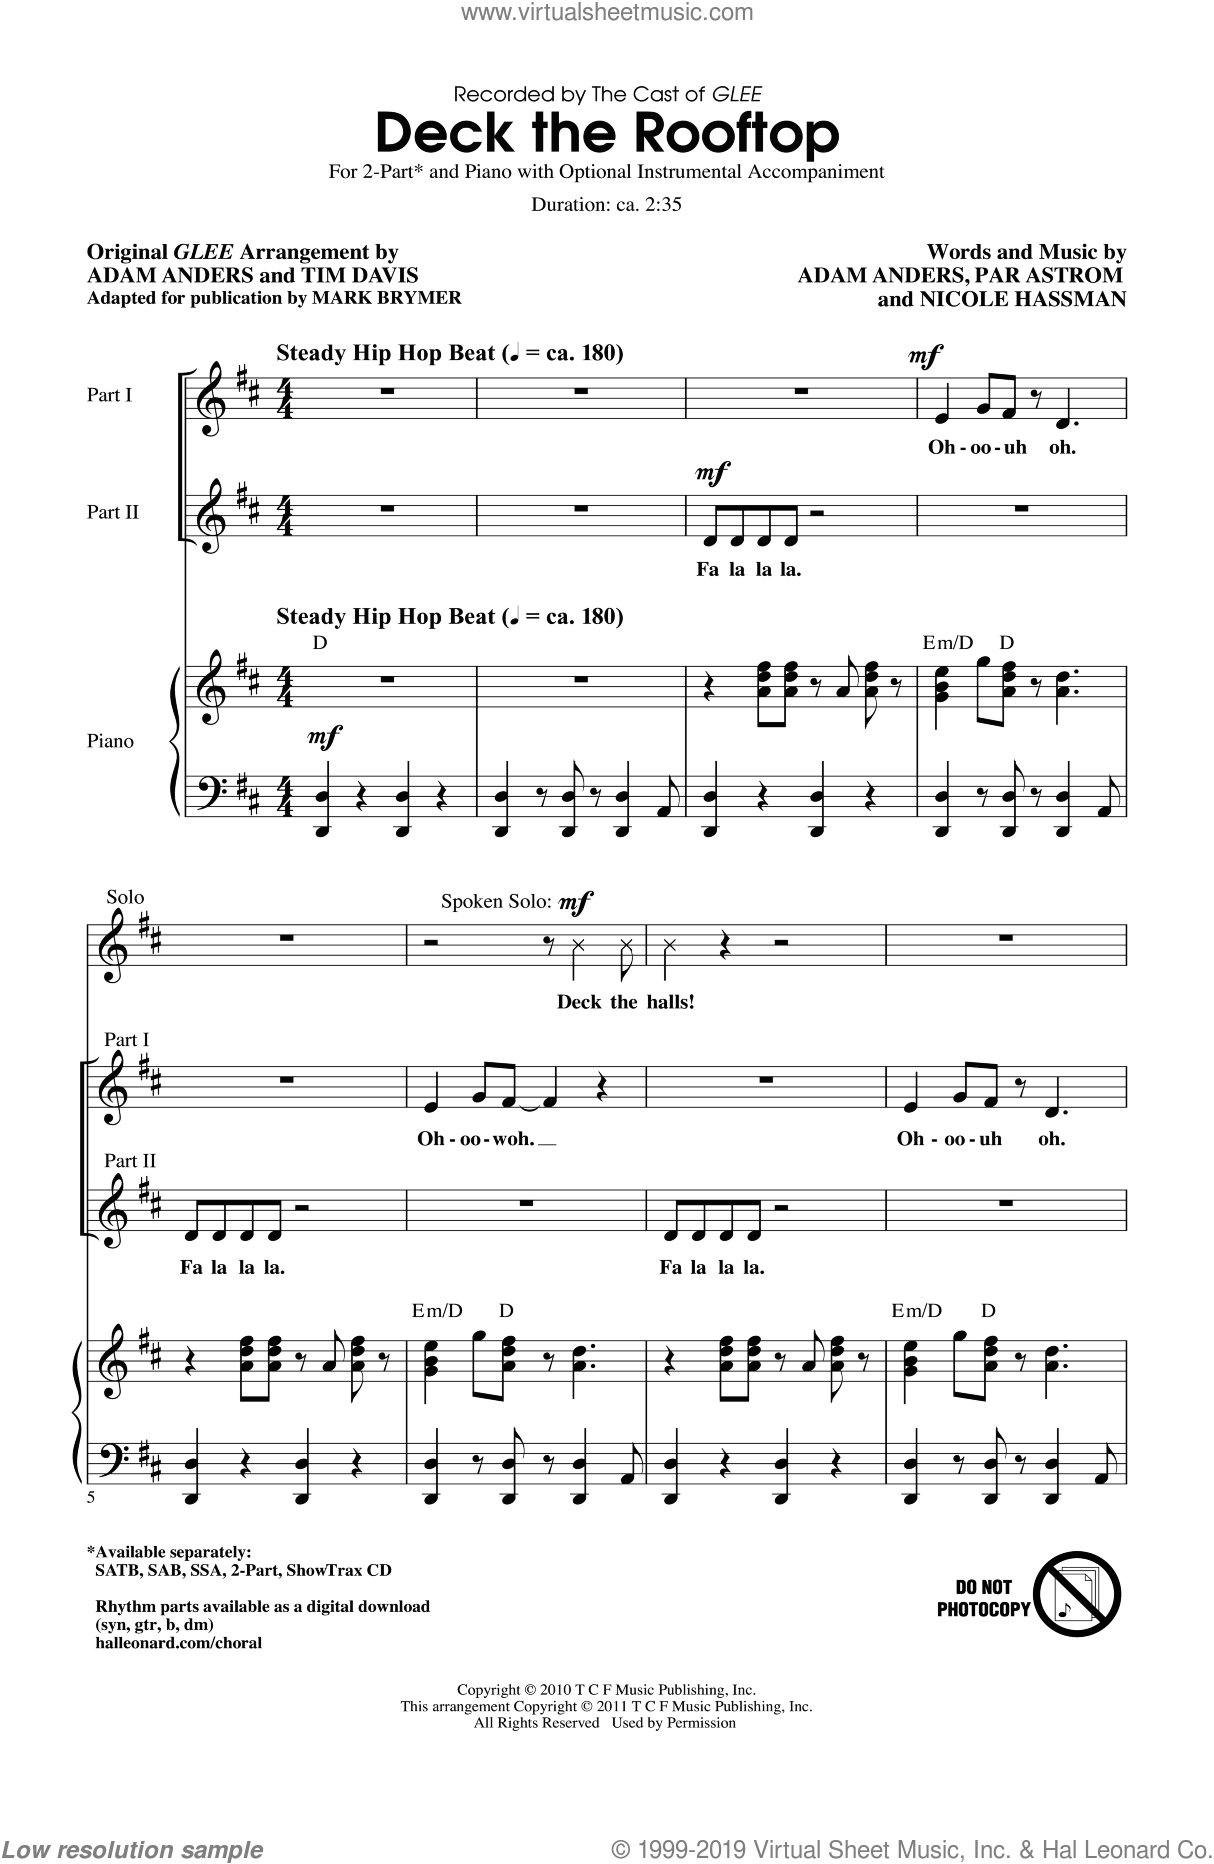 Deck The Rooftop sheet music for choir (2-Part) by Peer Astrom, Nicole Hassman, Nikki Hassman, Par Astrom, Adam Anders, Glee Cast, Mark Brymer, Miscellaneous and Tim Davis, intermediate duet